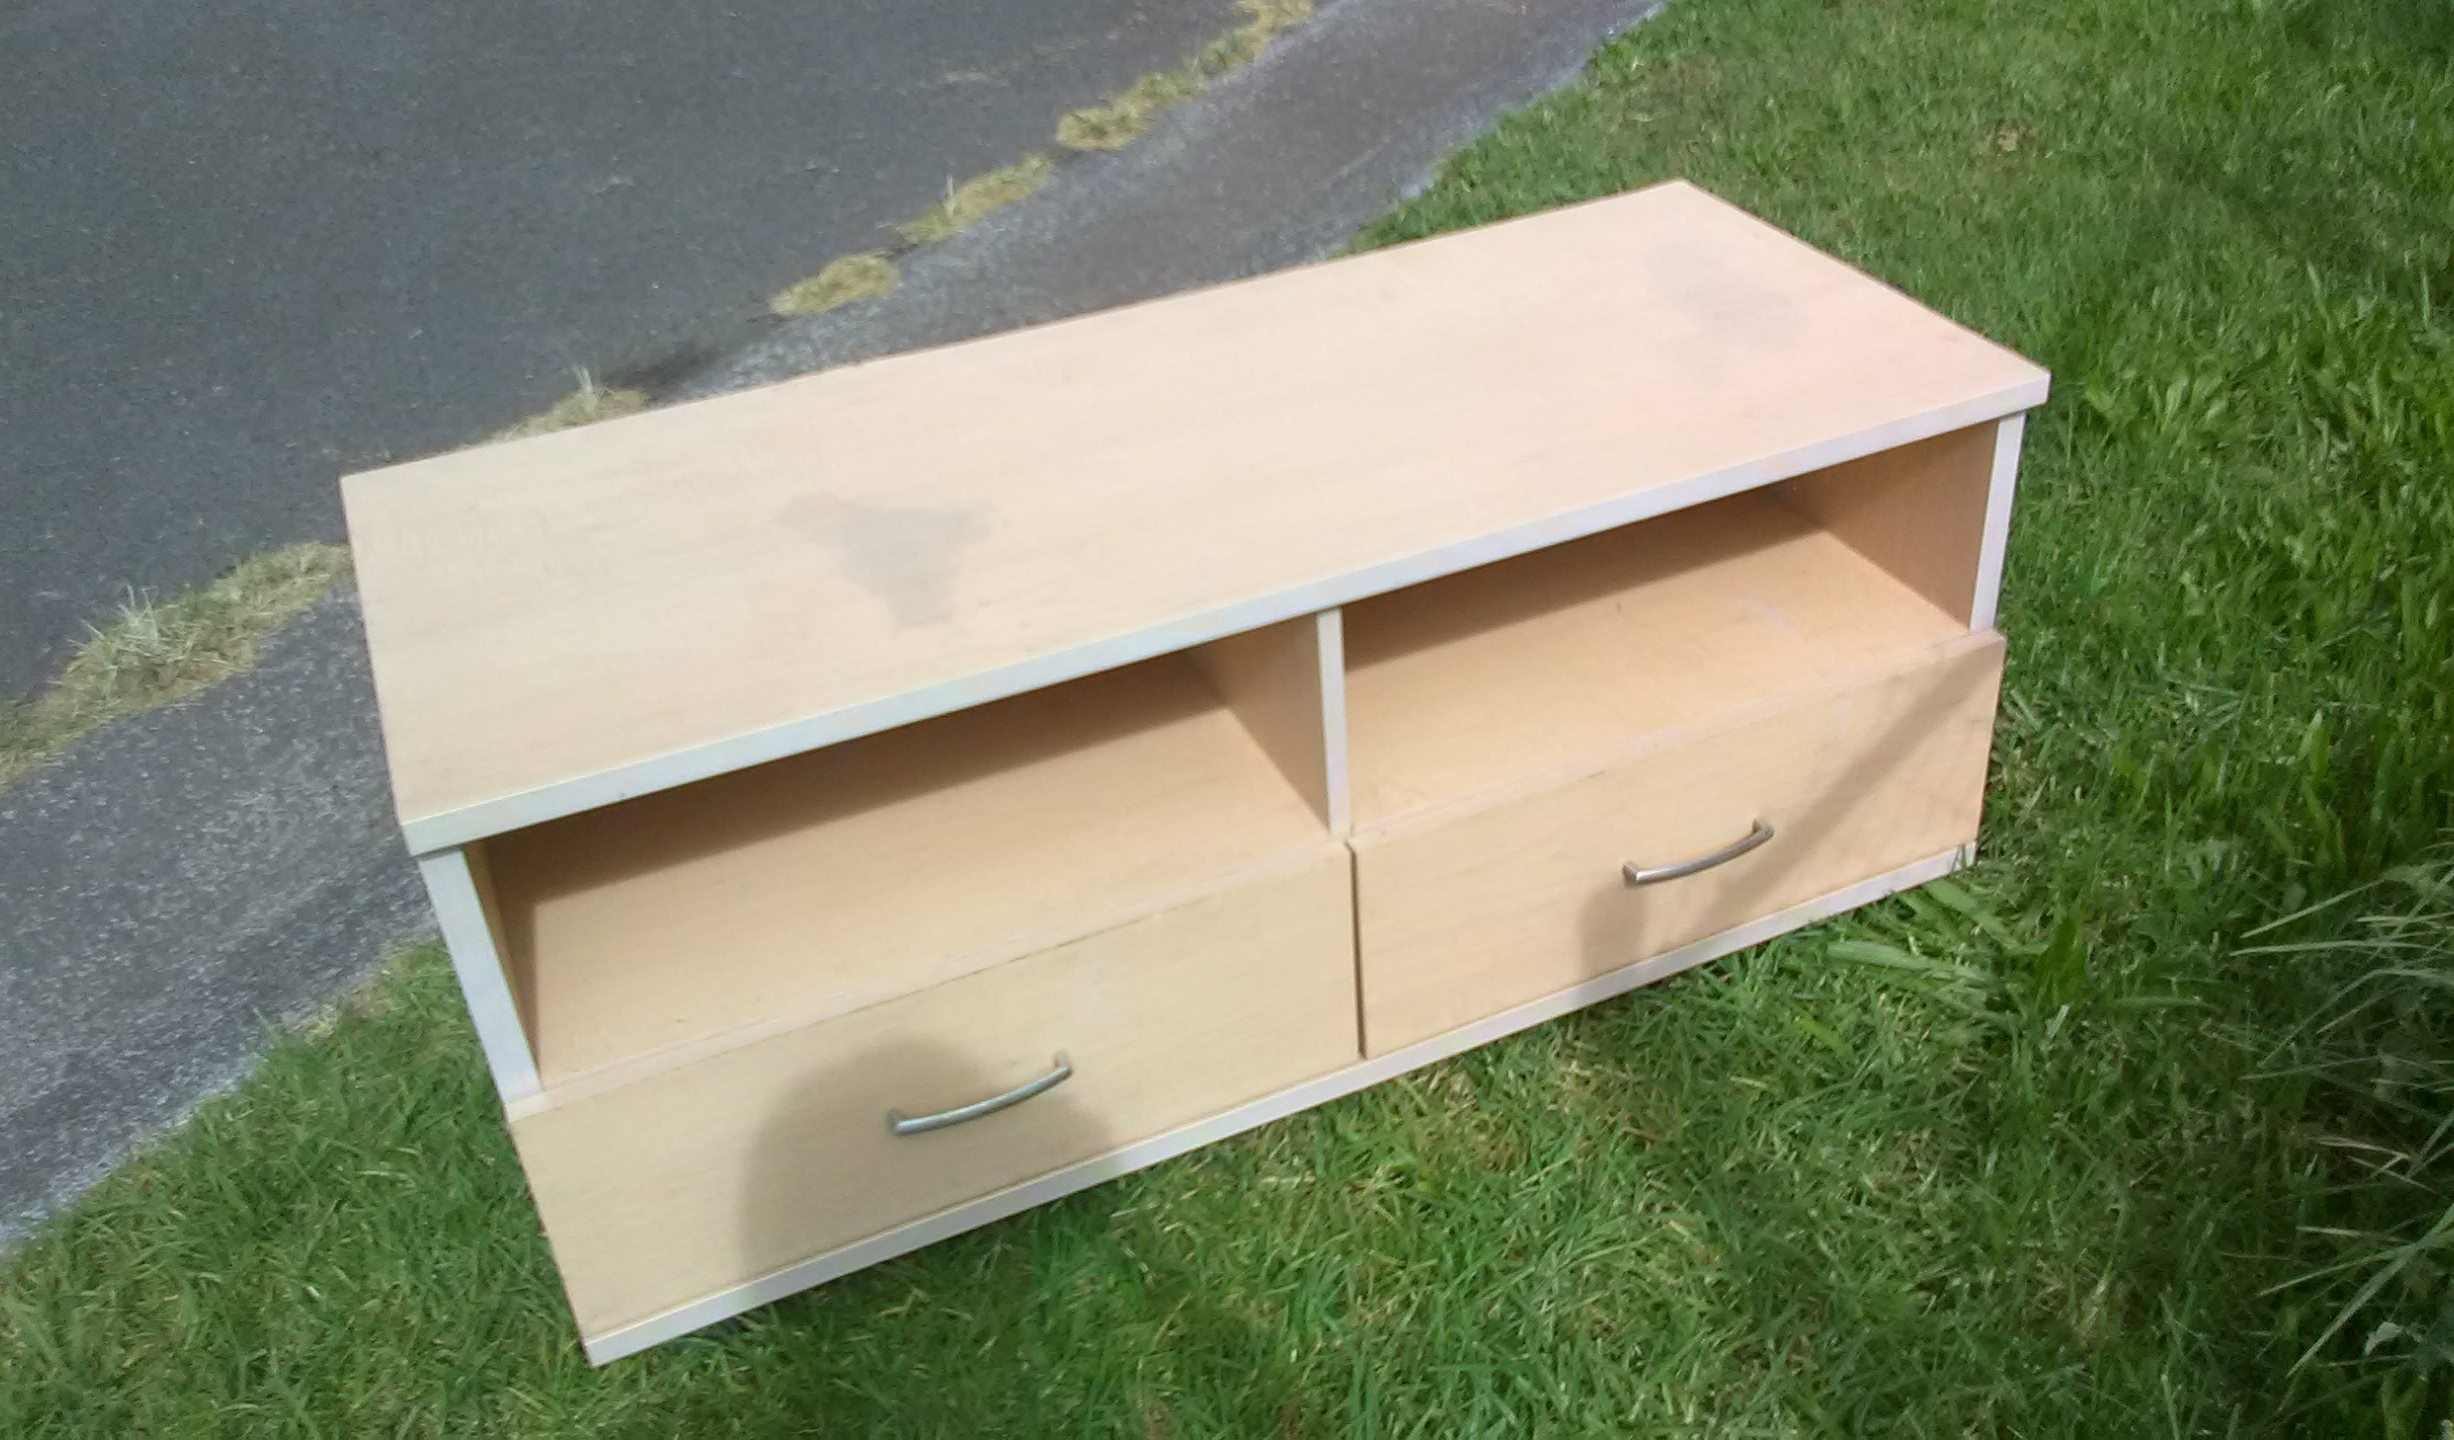 Free table, cairs, BBQ, TV stand